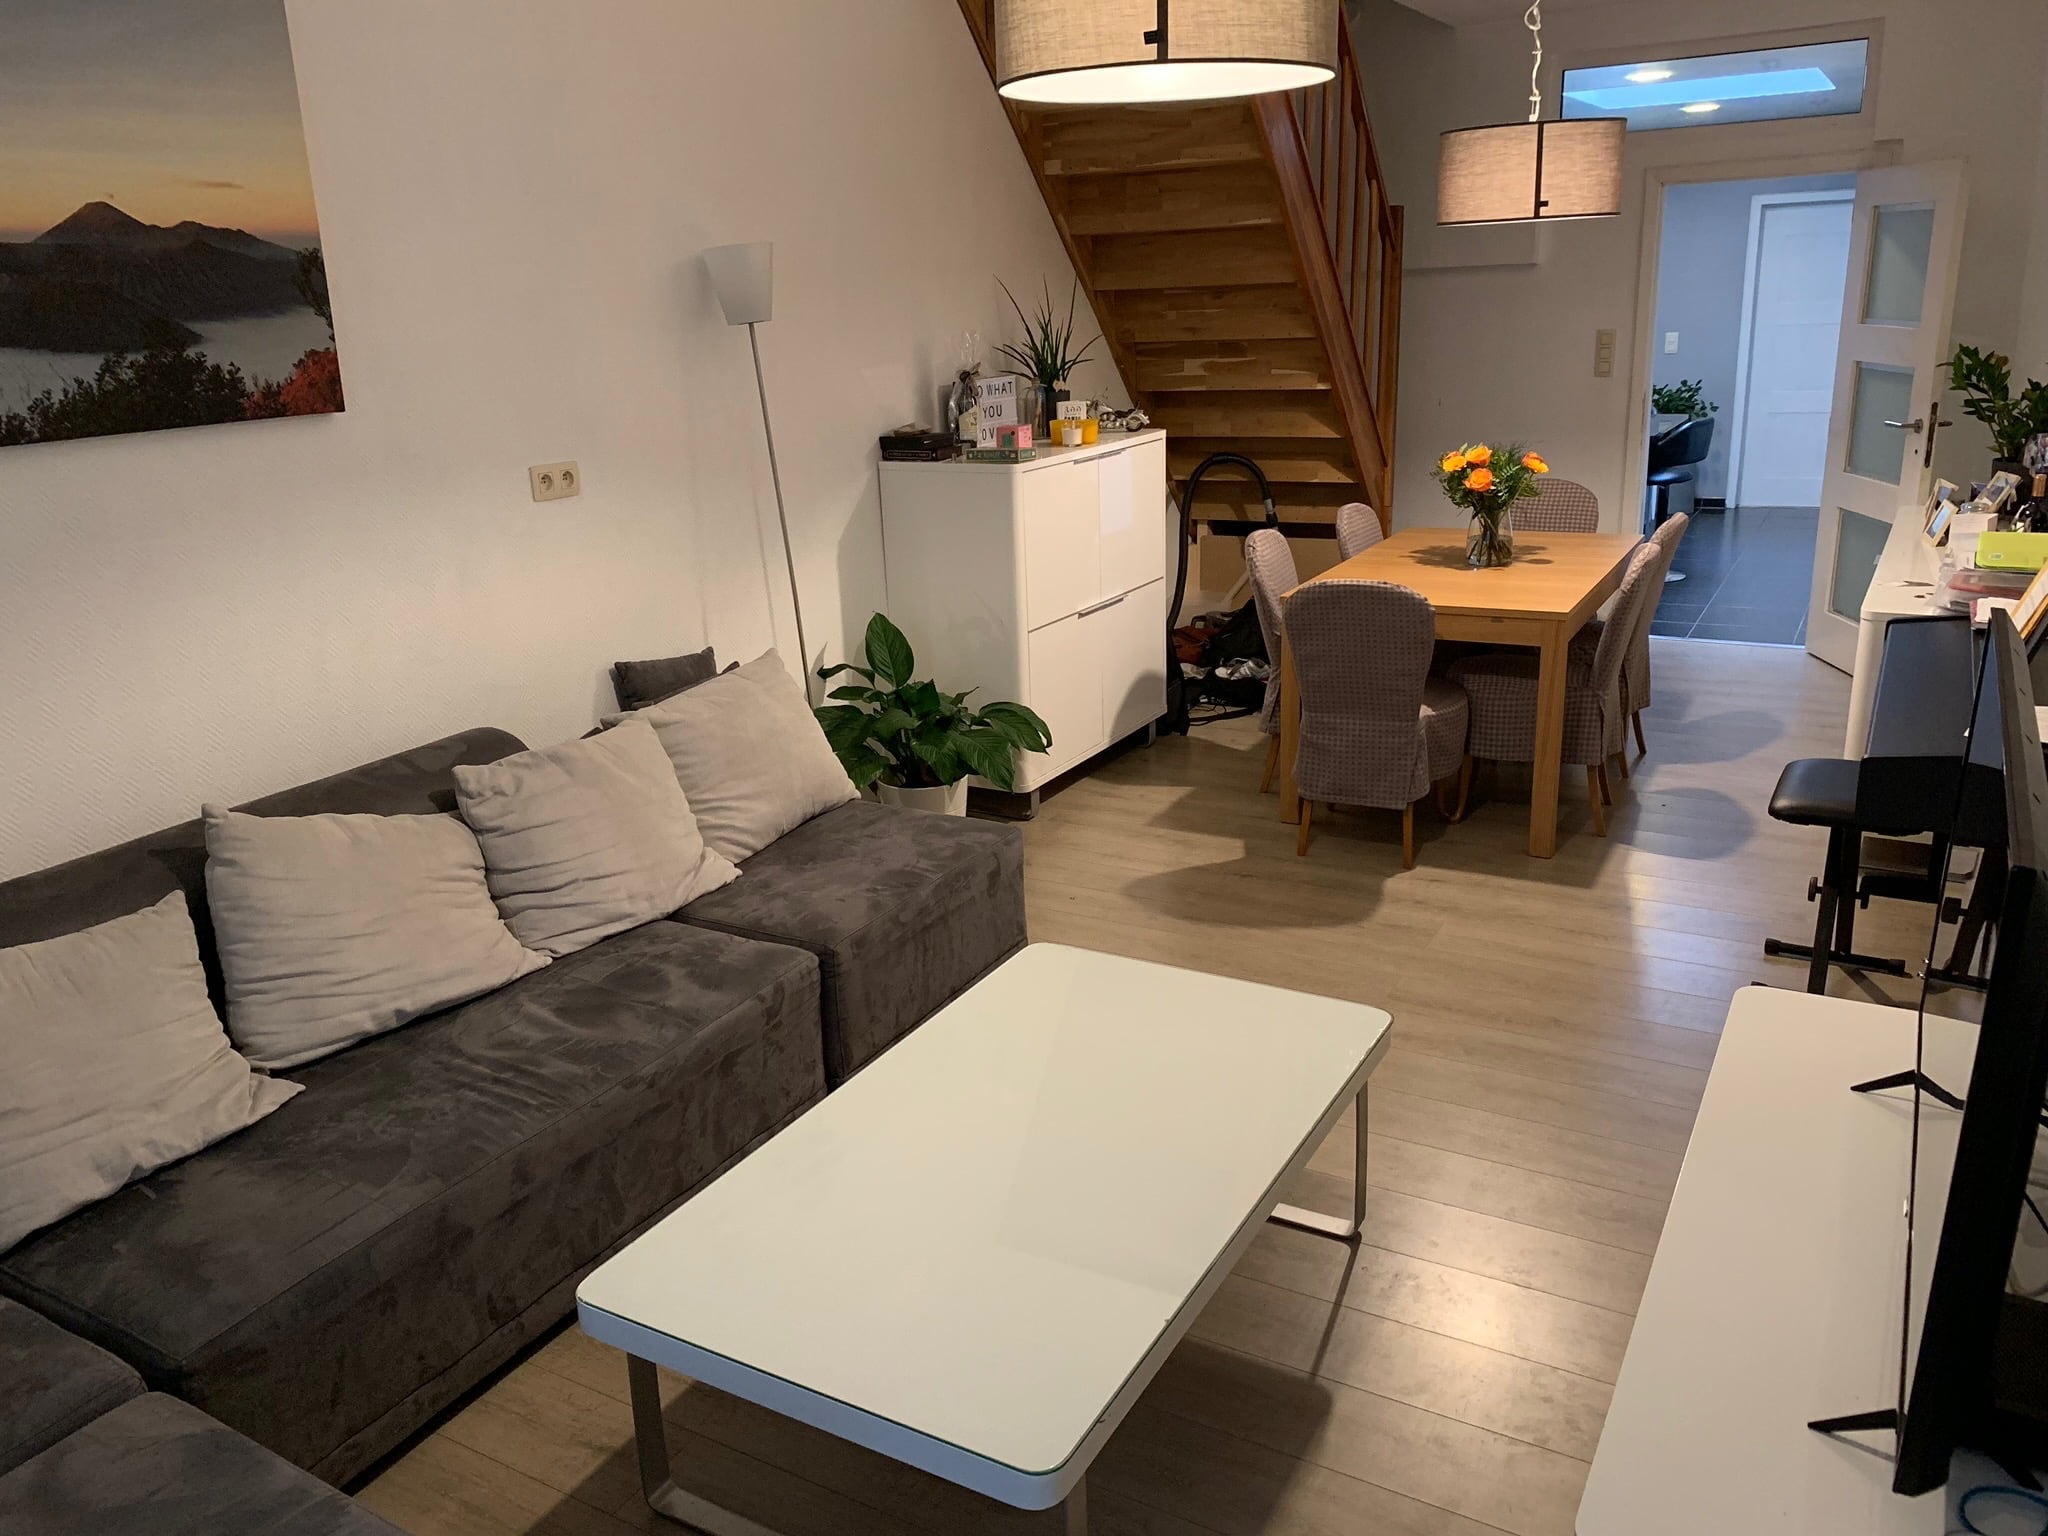 Great house for rent in Ghent for expats